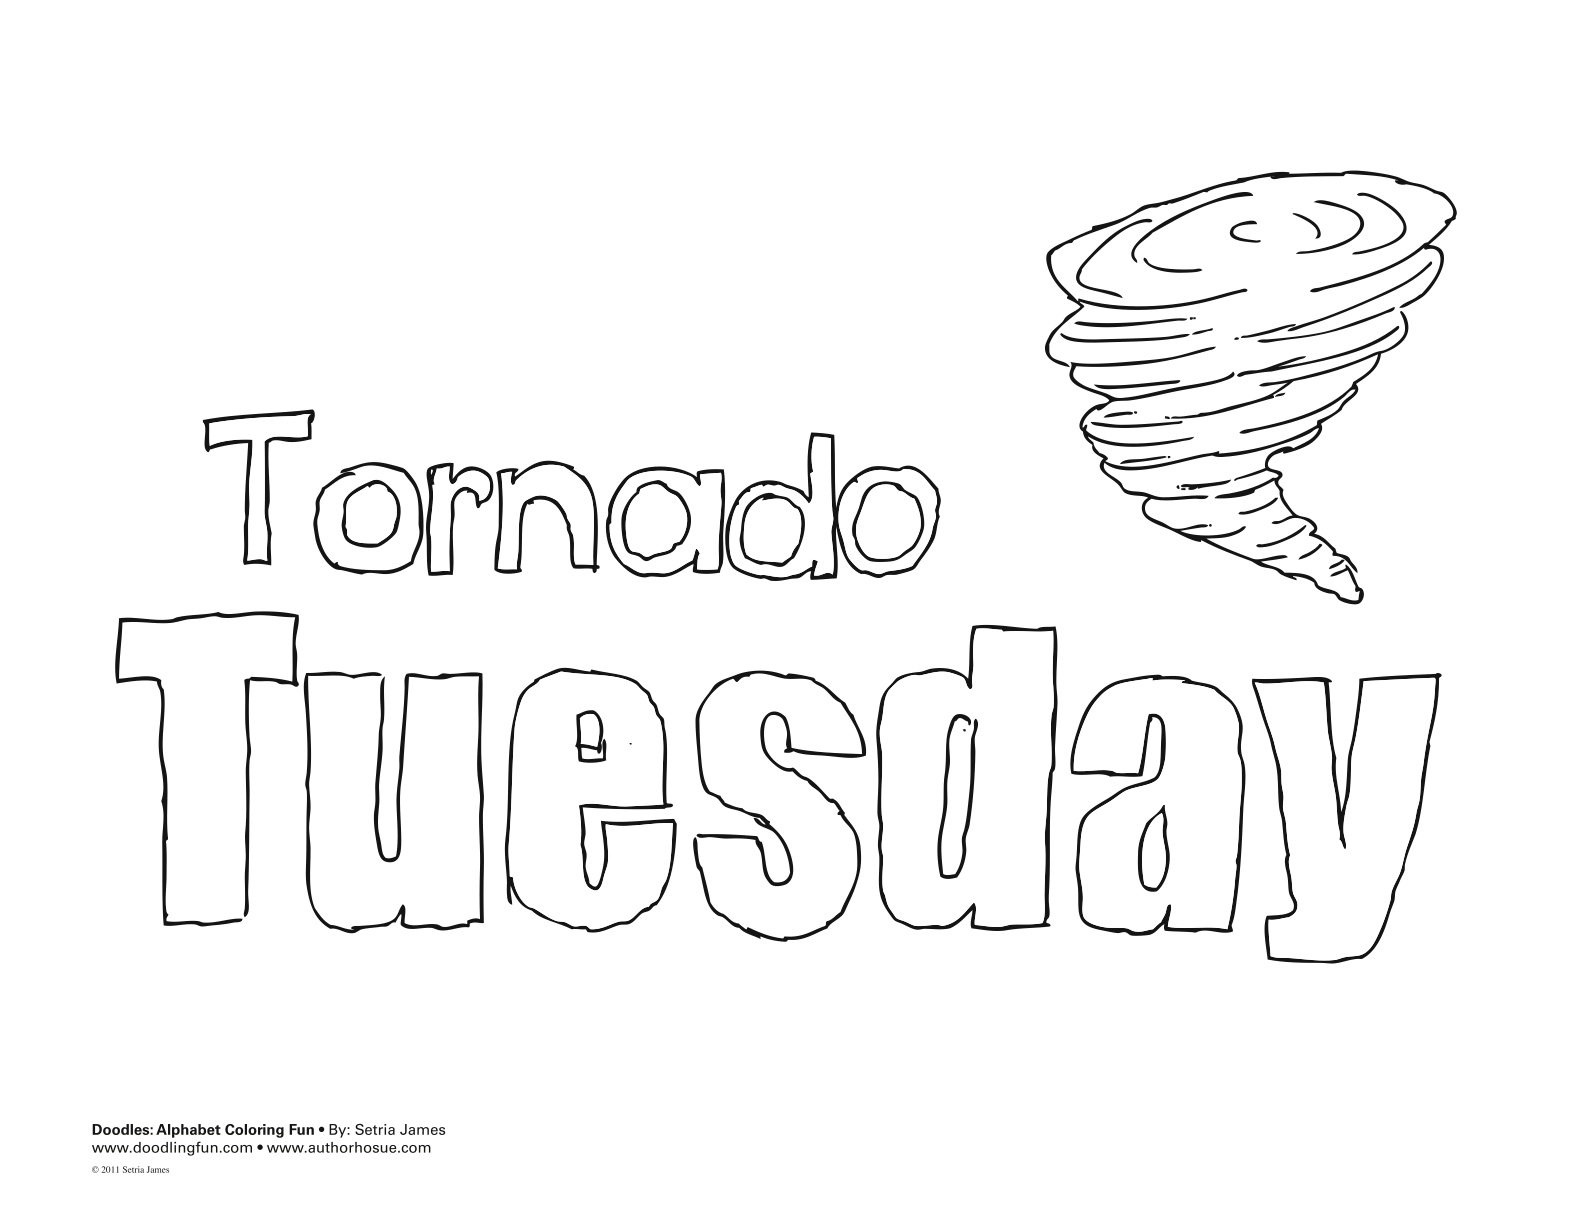 Coloring book page of a tornado - Coloring Pages Days Of The Week Allcolored